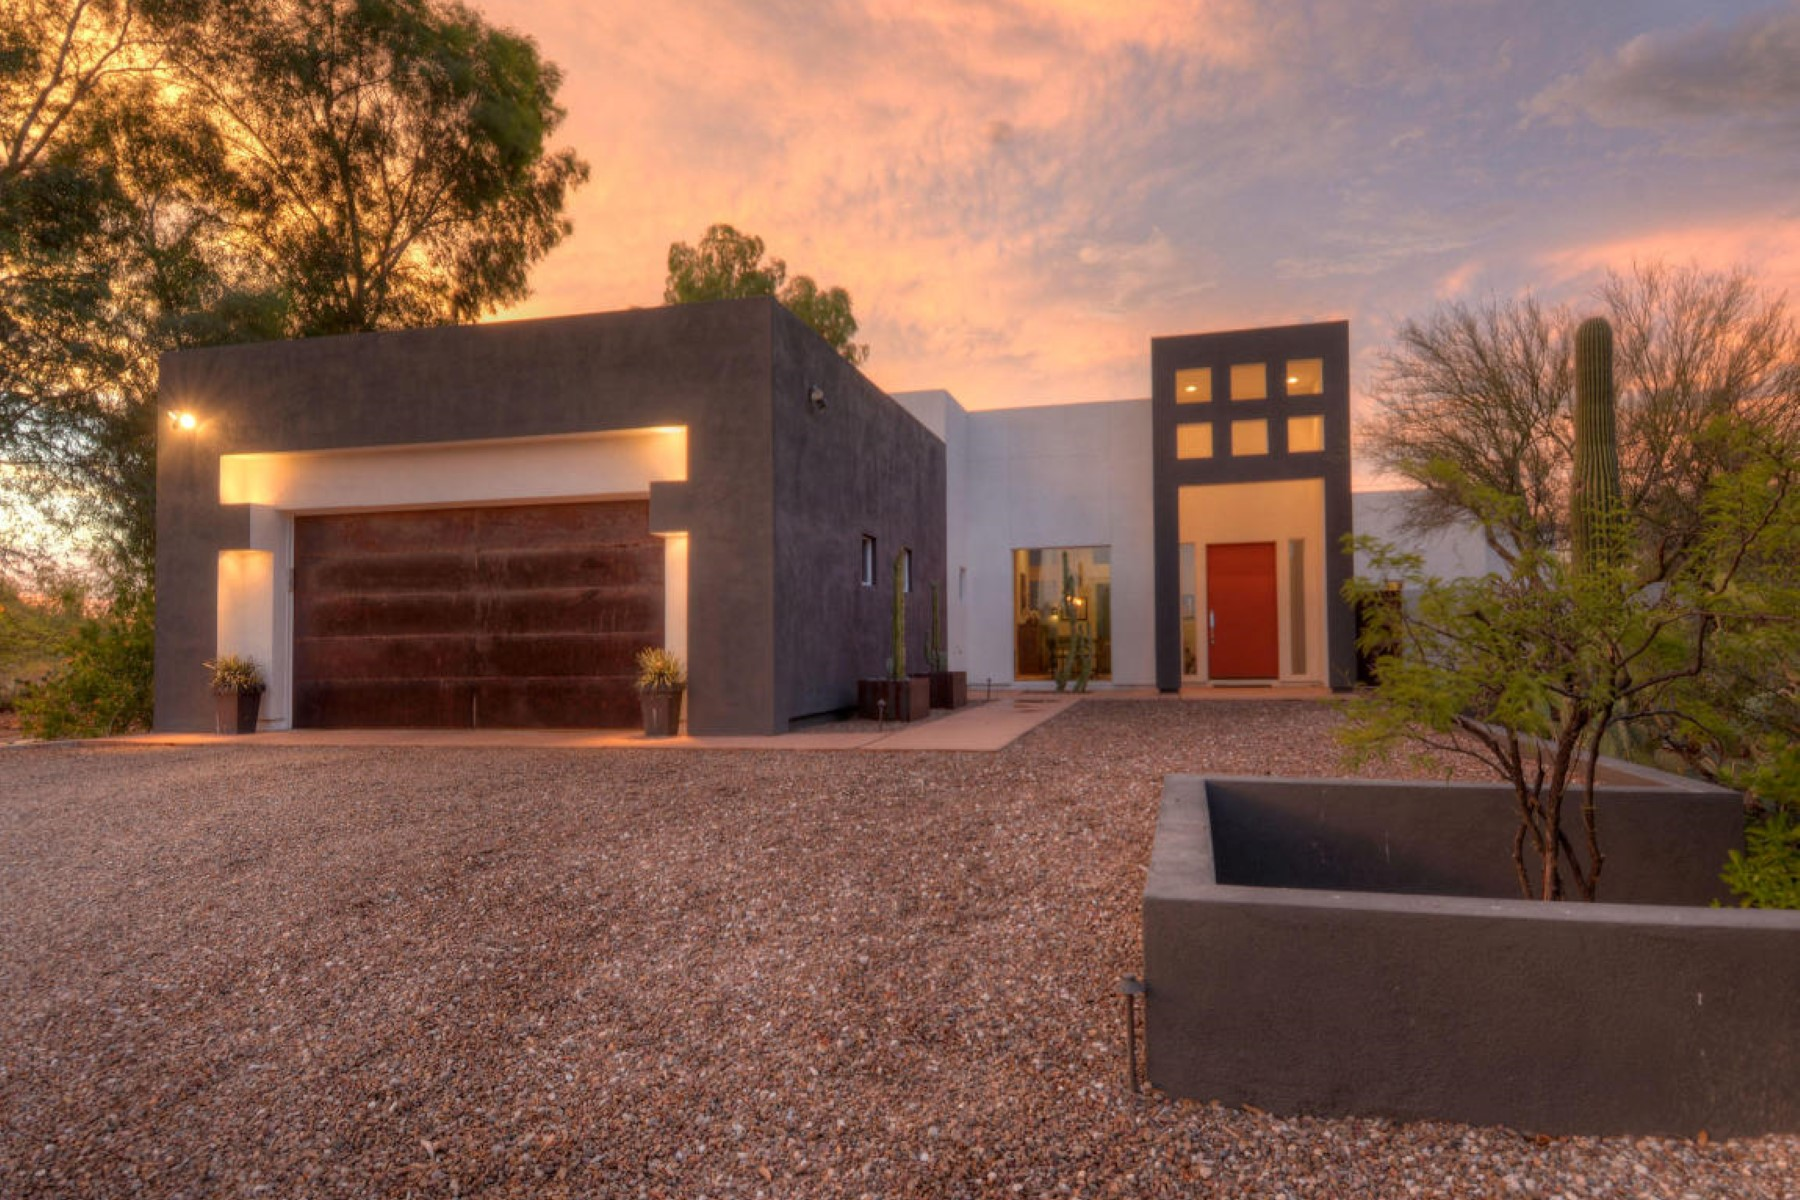 Single Family Home for Sale at Wonderful combination of architecture and design 6886 N Casas Adobes Drive Tucson, Arizona 85718 United States